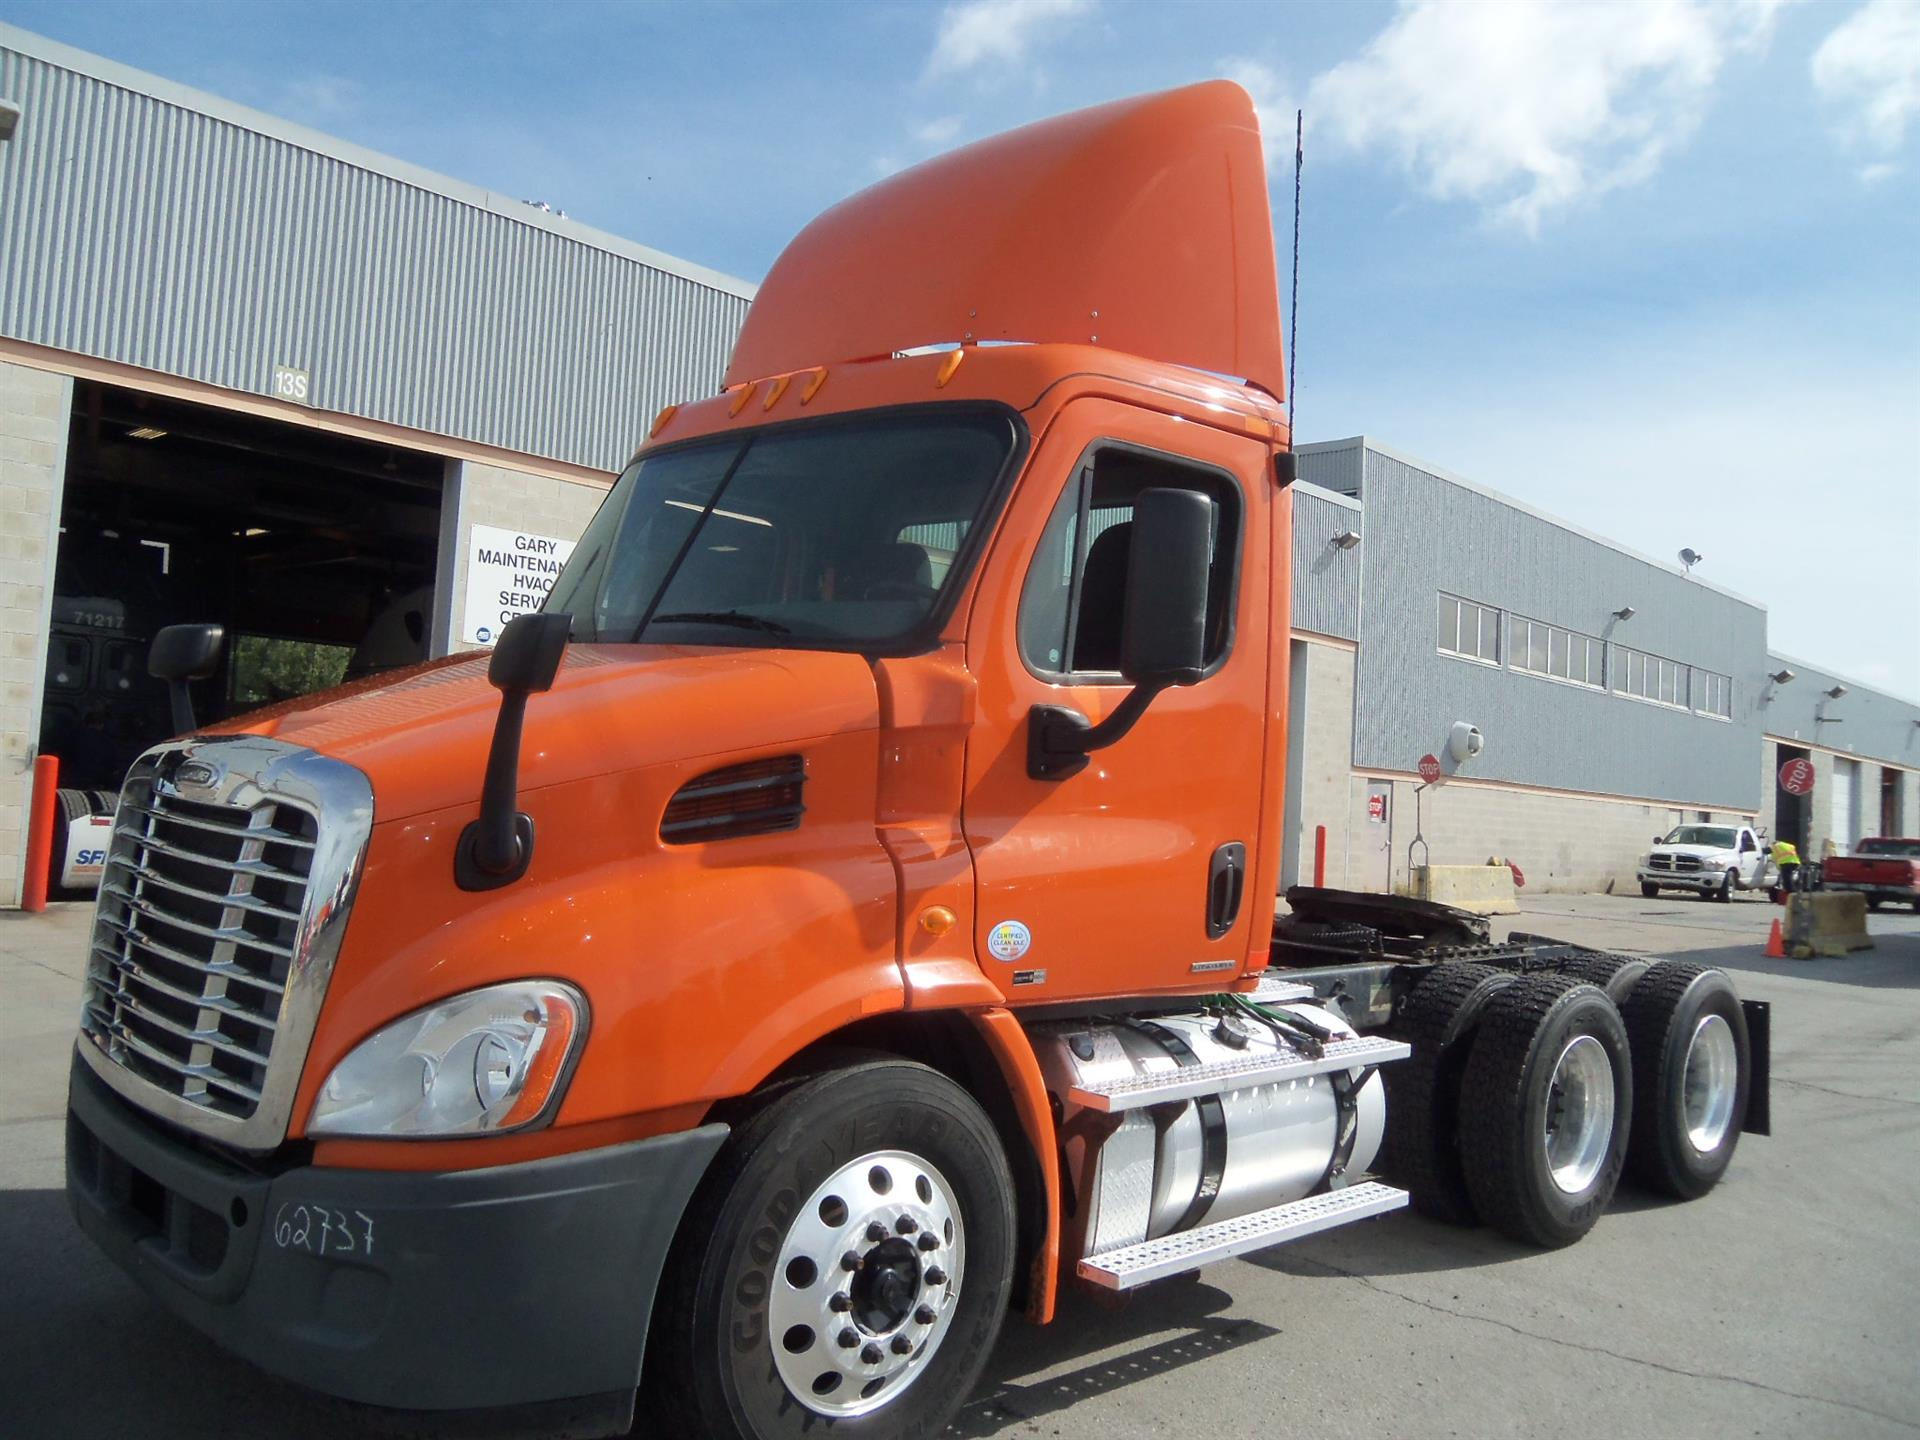 USED 2011 FREIGHTLINER CASCADIA DAYCAB TRUCK #82100